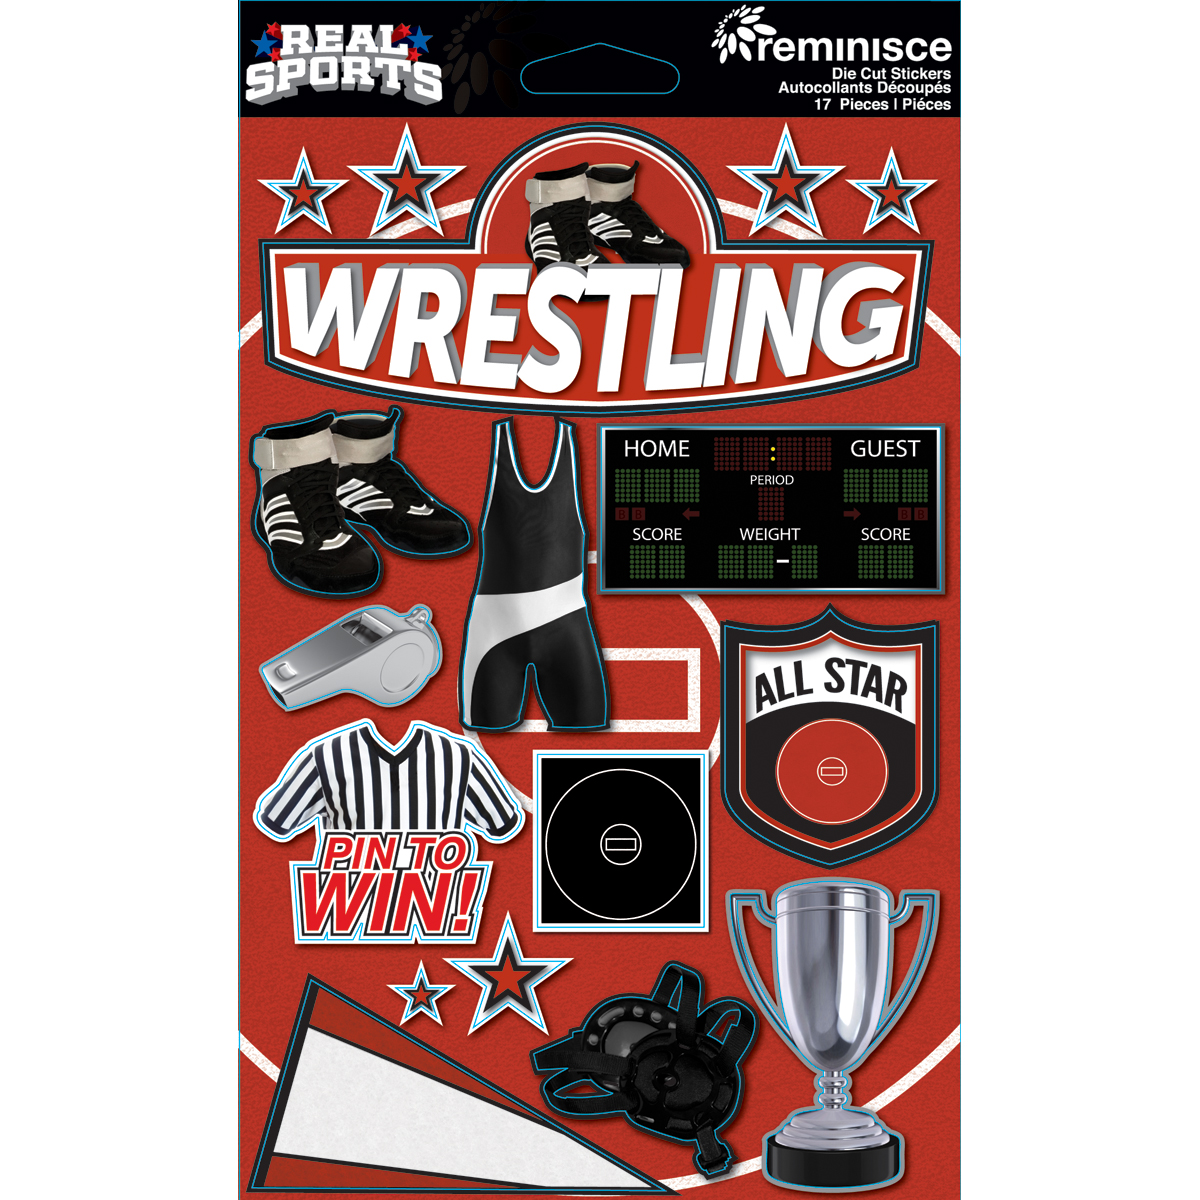 Reminisce Real Sports Dimensional Stickers Wrestling